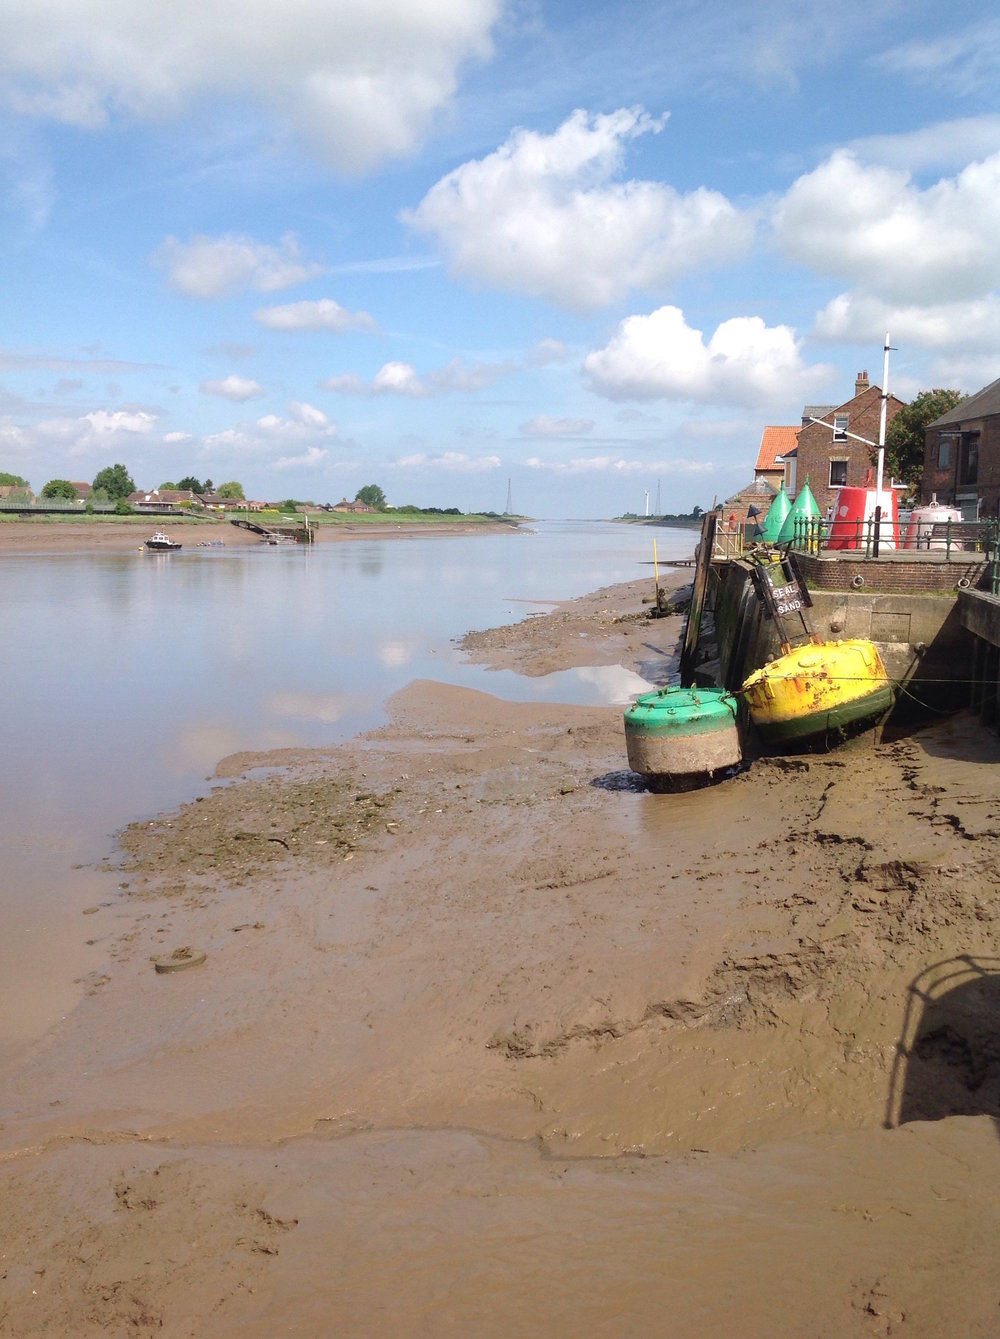 The Great Ouse river at low tide, looking towards the Wash. This view can be seen only moments from the town centre